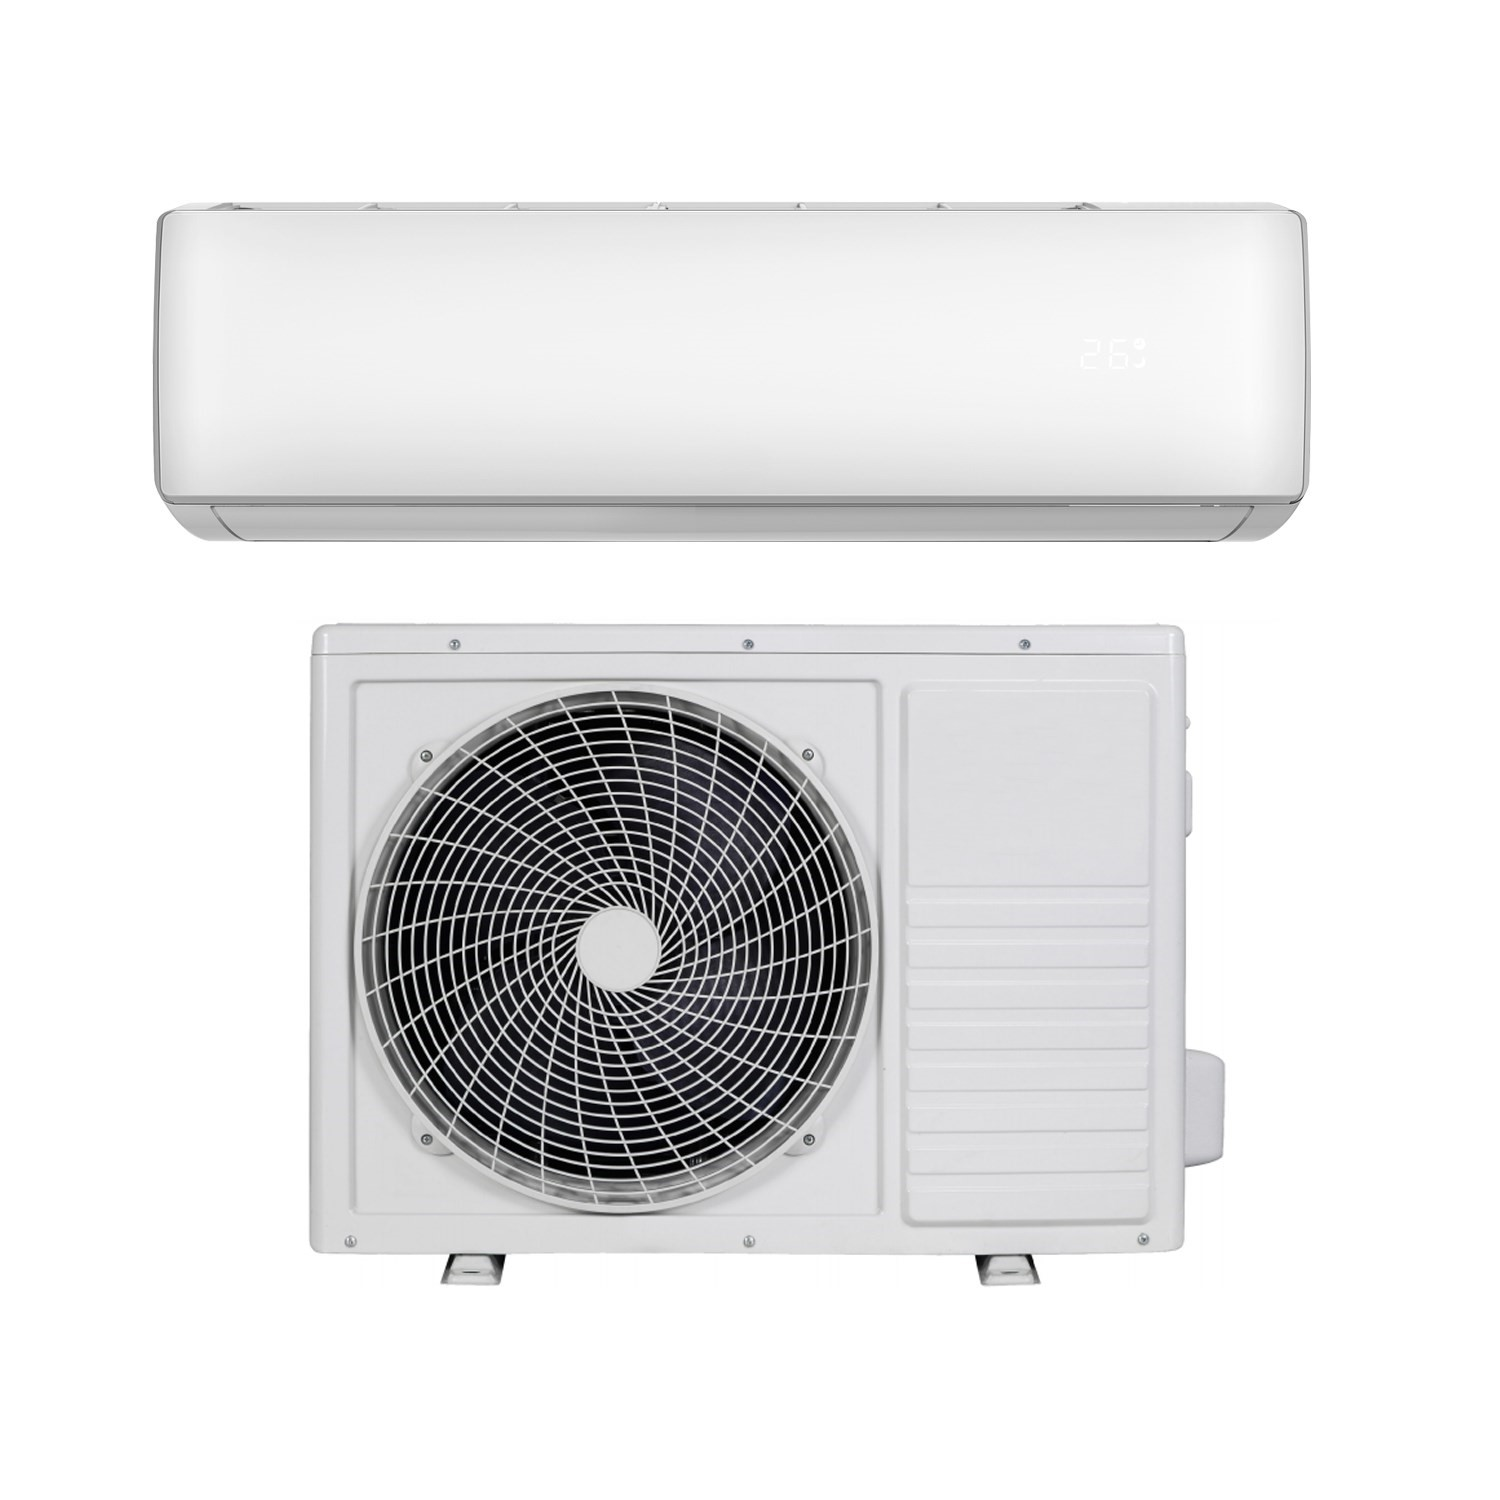 Buy 12000 Btu Wifi Smart A Easy Fit Dc Inverter Wall Split Air Conditioner With 5 Meters Pipe Kit From Aircon Direct